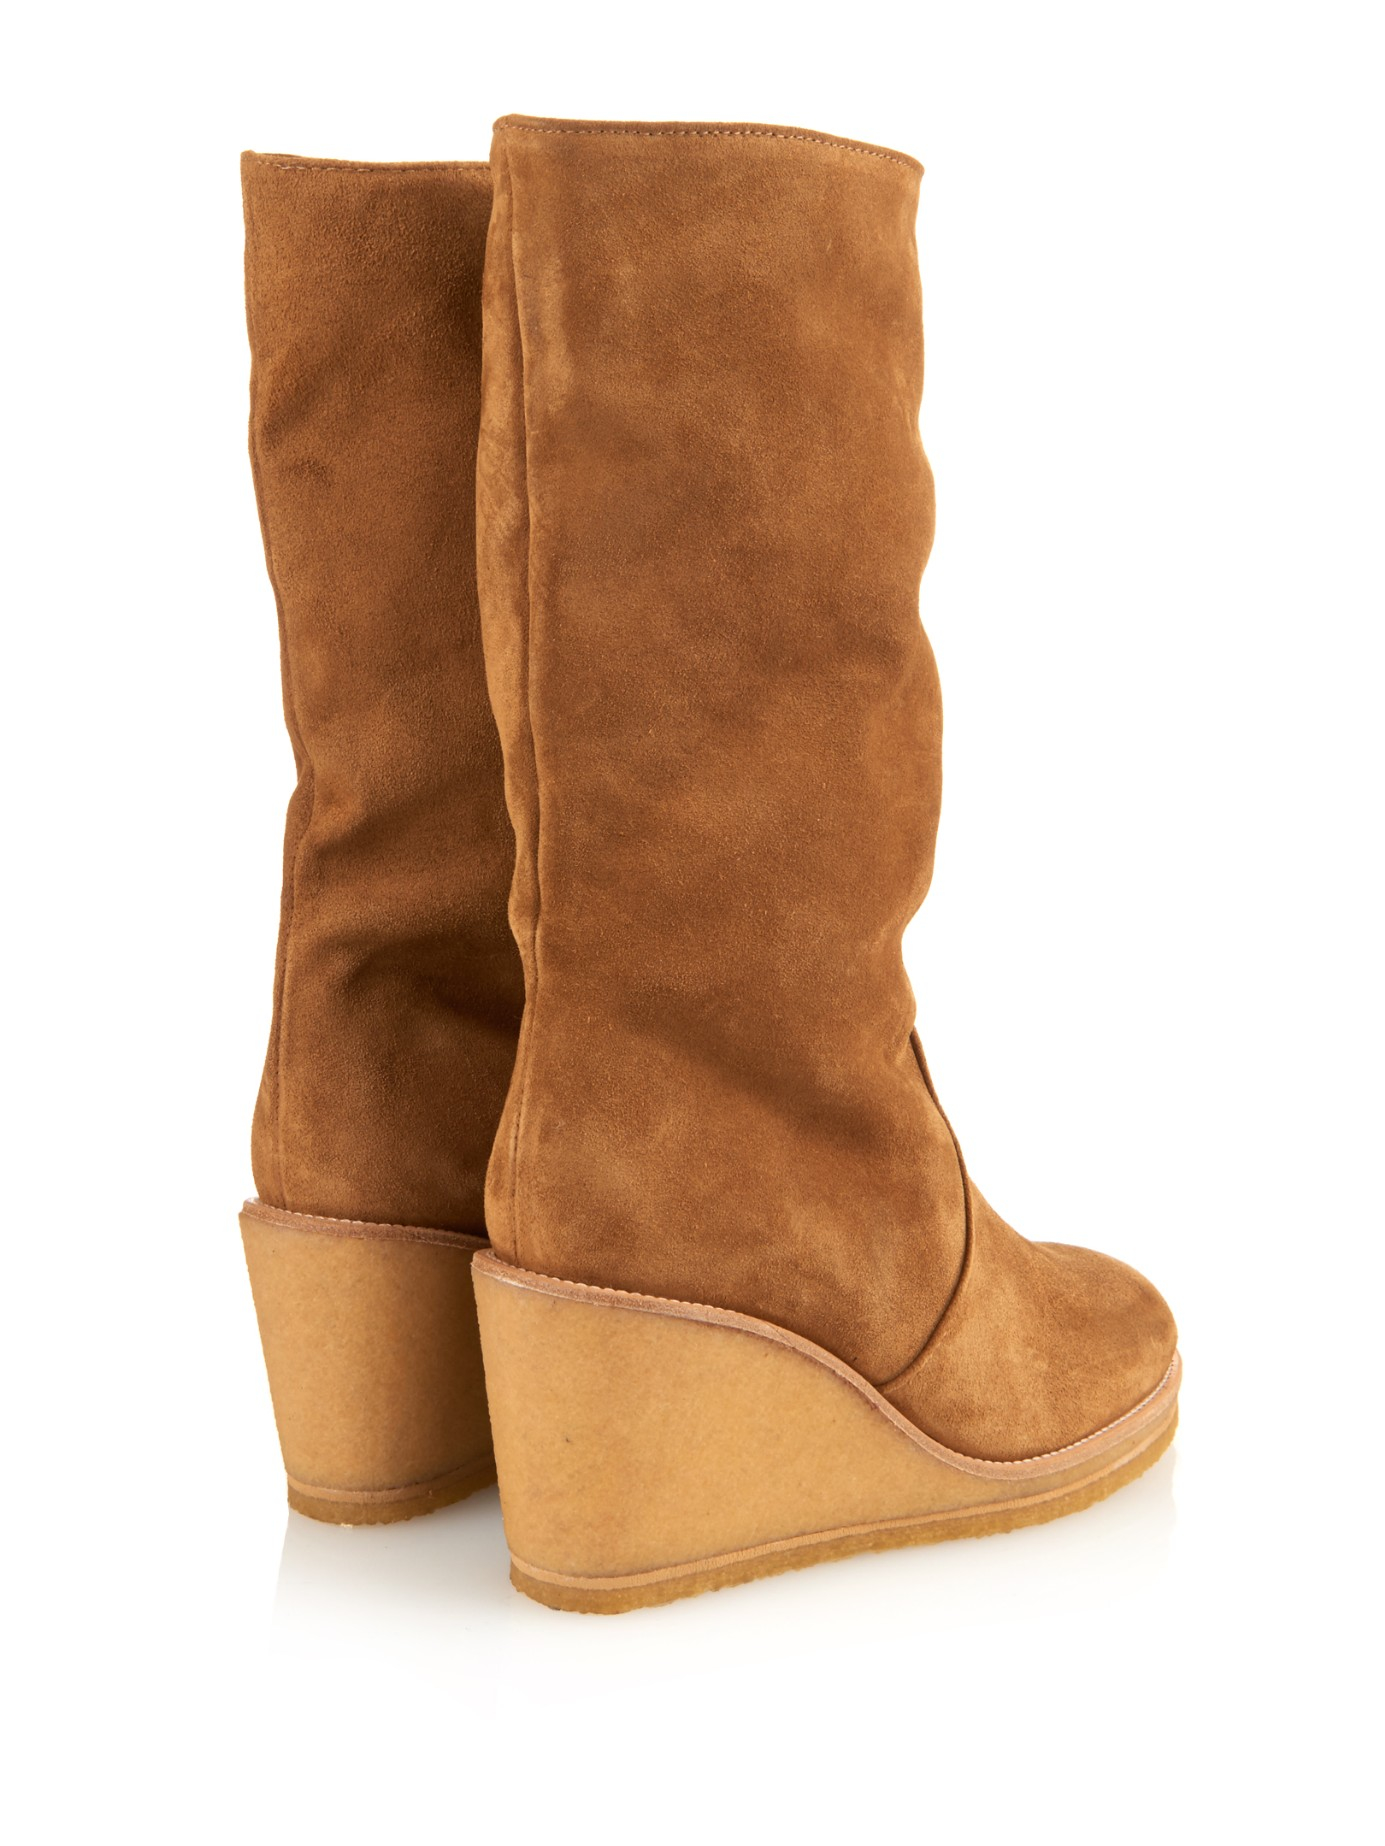 A.P.C. Clara Suede Wedge Boots in Tan (Brown)